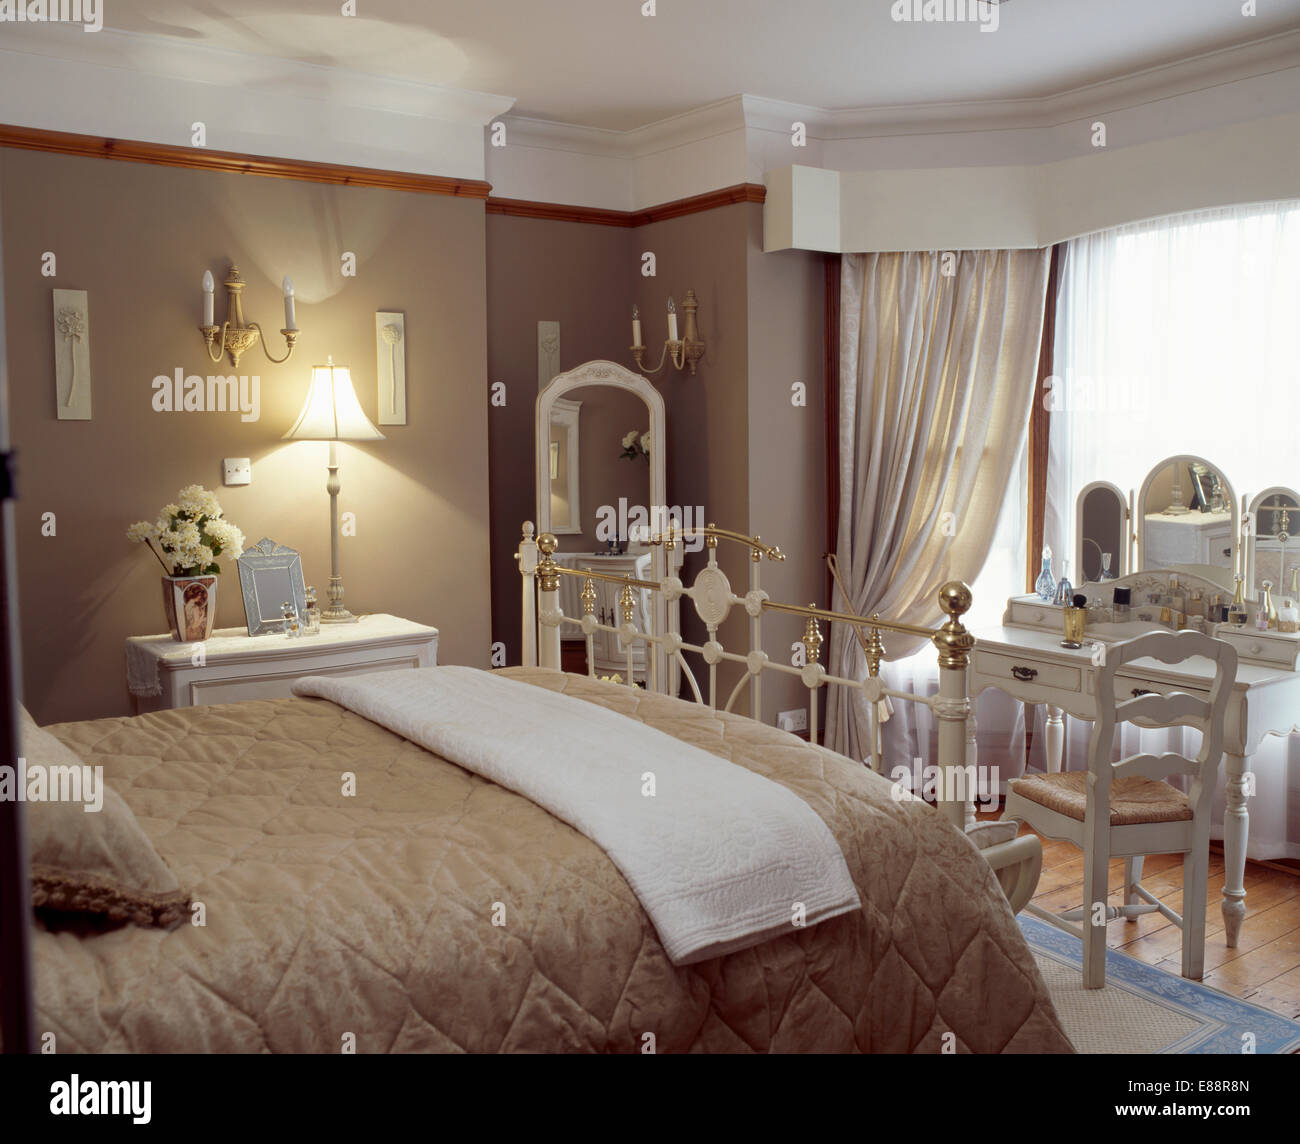 cream throw and dark beige quilt on brass bed in beige bedroom with lighted lamp and window with cream curtains - Beige Bedroom